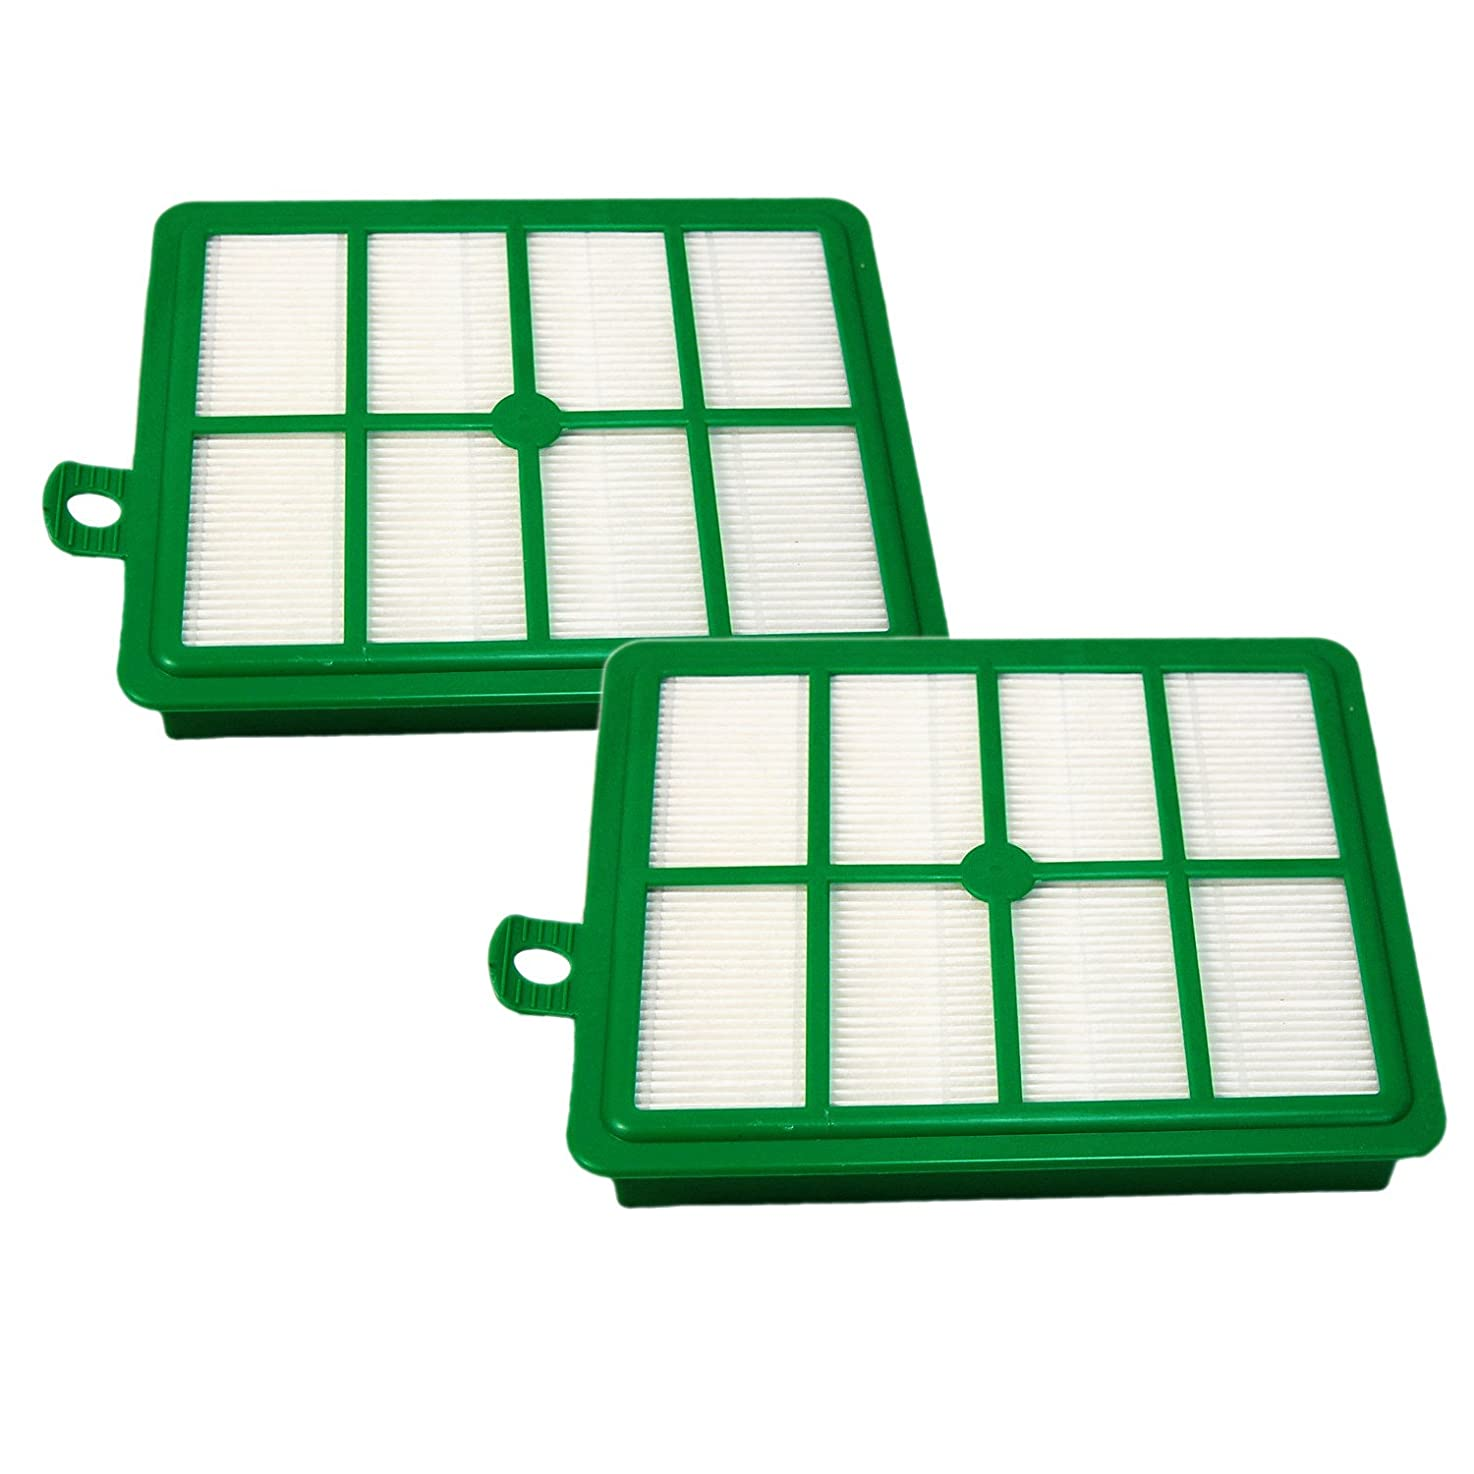 HQRP 2-Pack Hepa Filter for Electrolux Harmony, Oxygen, Oxygen Ultra, Oxygen 3 Ultra Canister Vacuum Cleaners plus Coaster